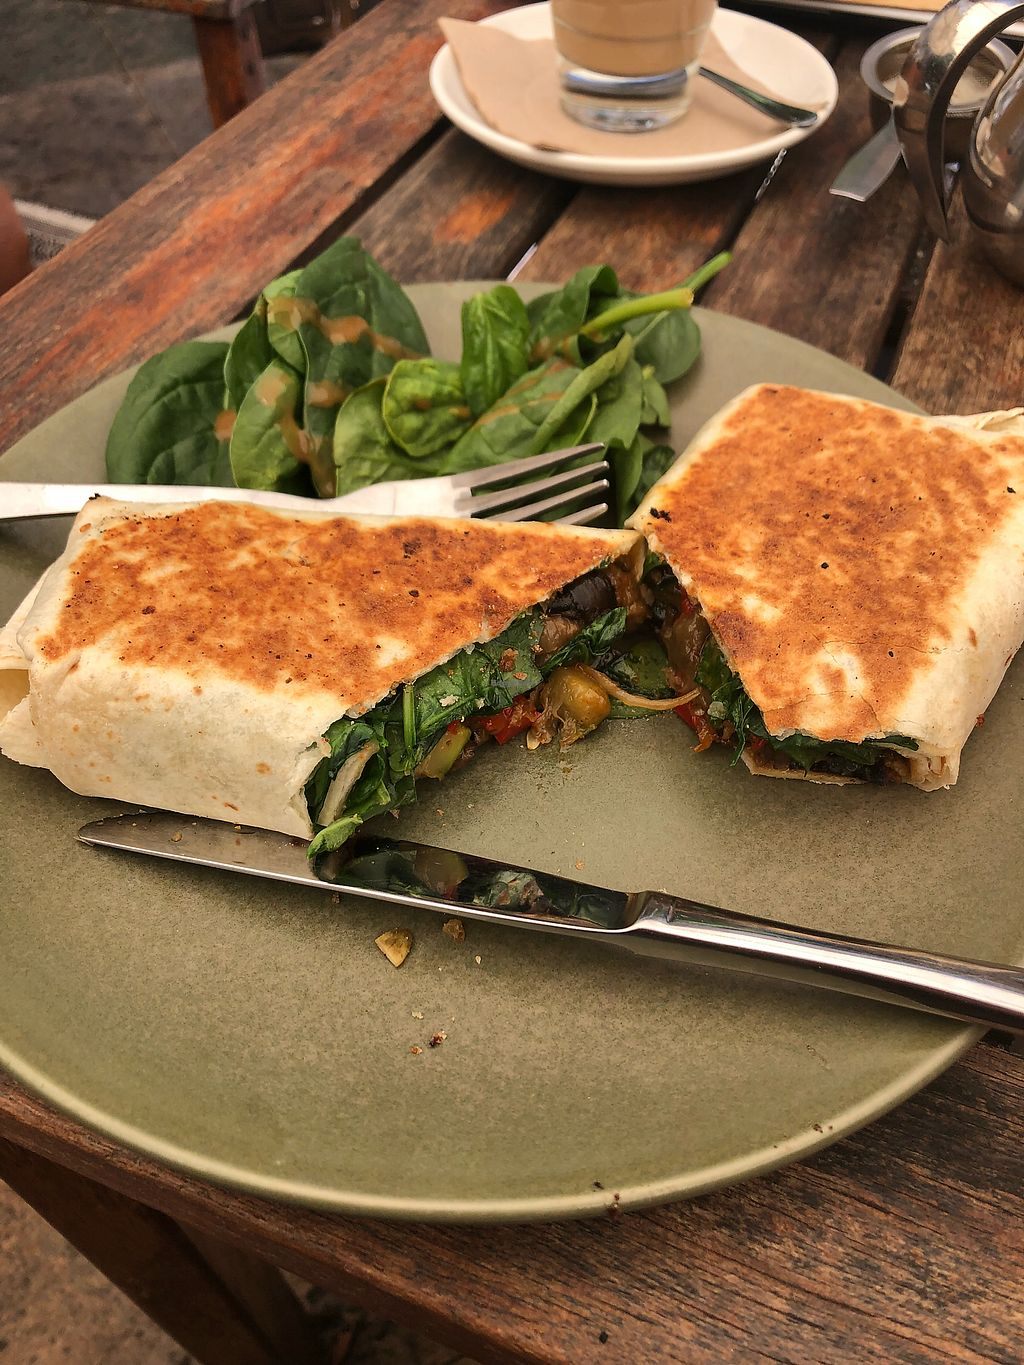 """Photo of Moore & Moore Cafe  by <a href=""""/members/profile/dfc44"""">dfc44</a> <br/> Vegan wrap <br/> December 7, 2017  - <a href='/contact/abuse/image/71517/333248'>Report</a>"""